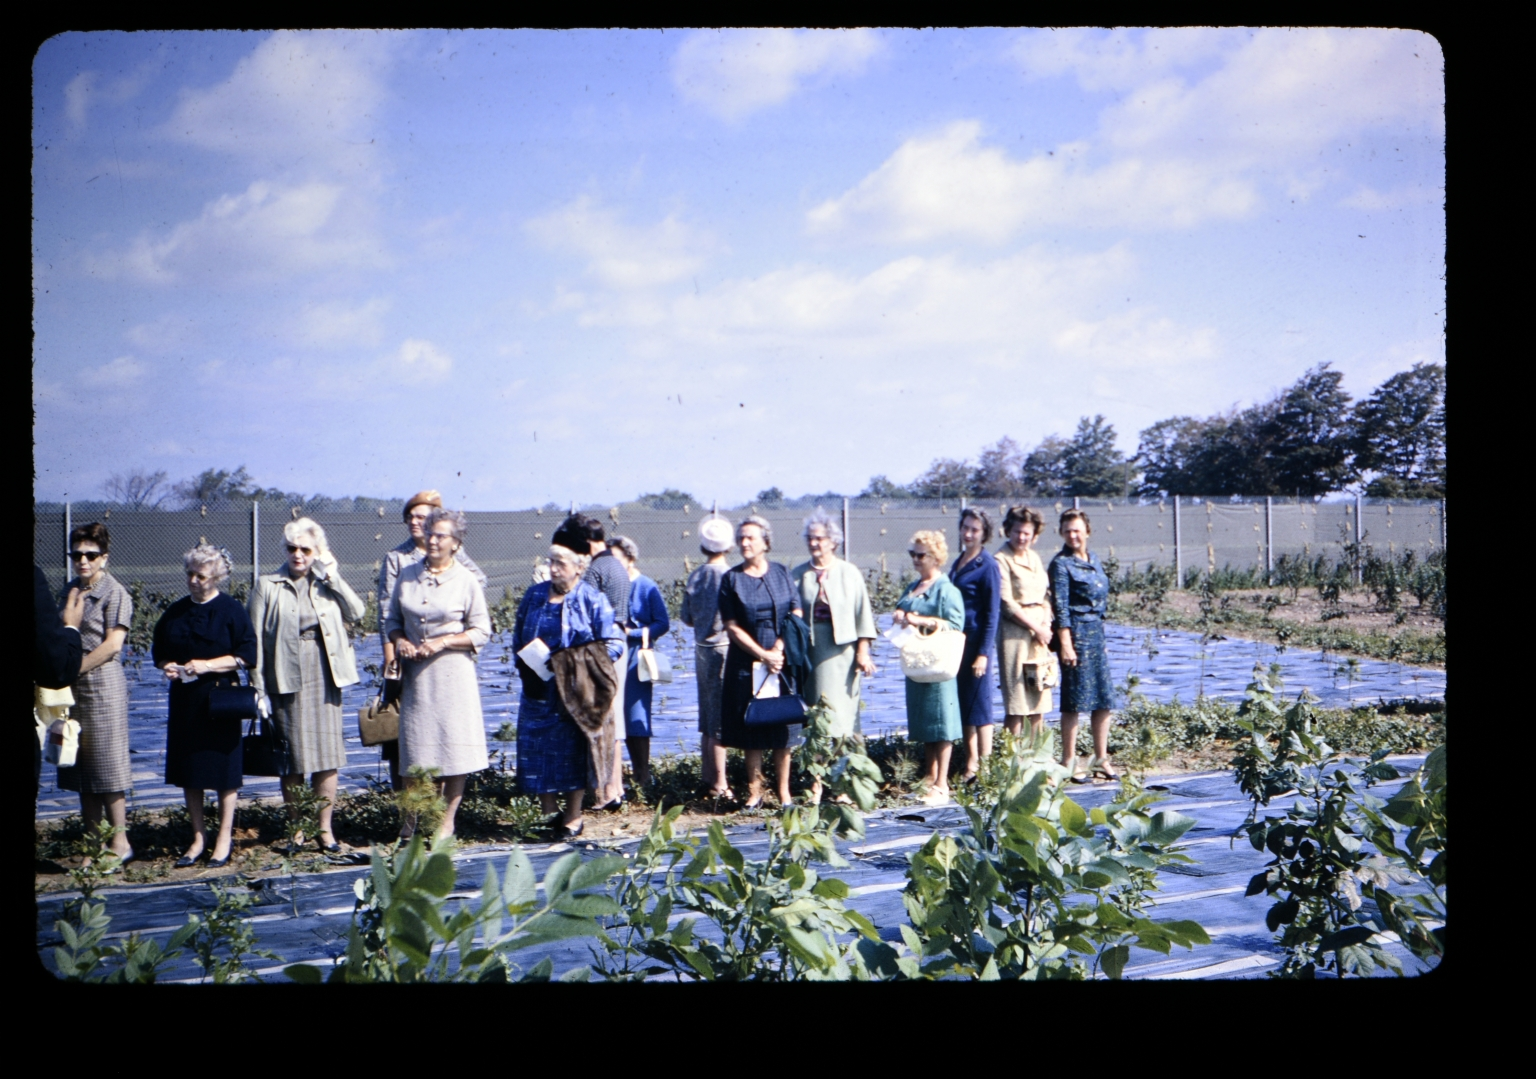 Women standing in field